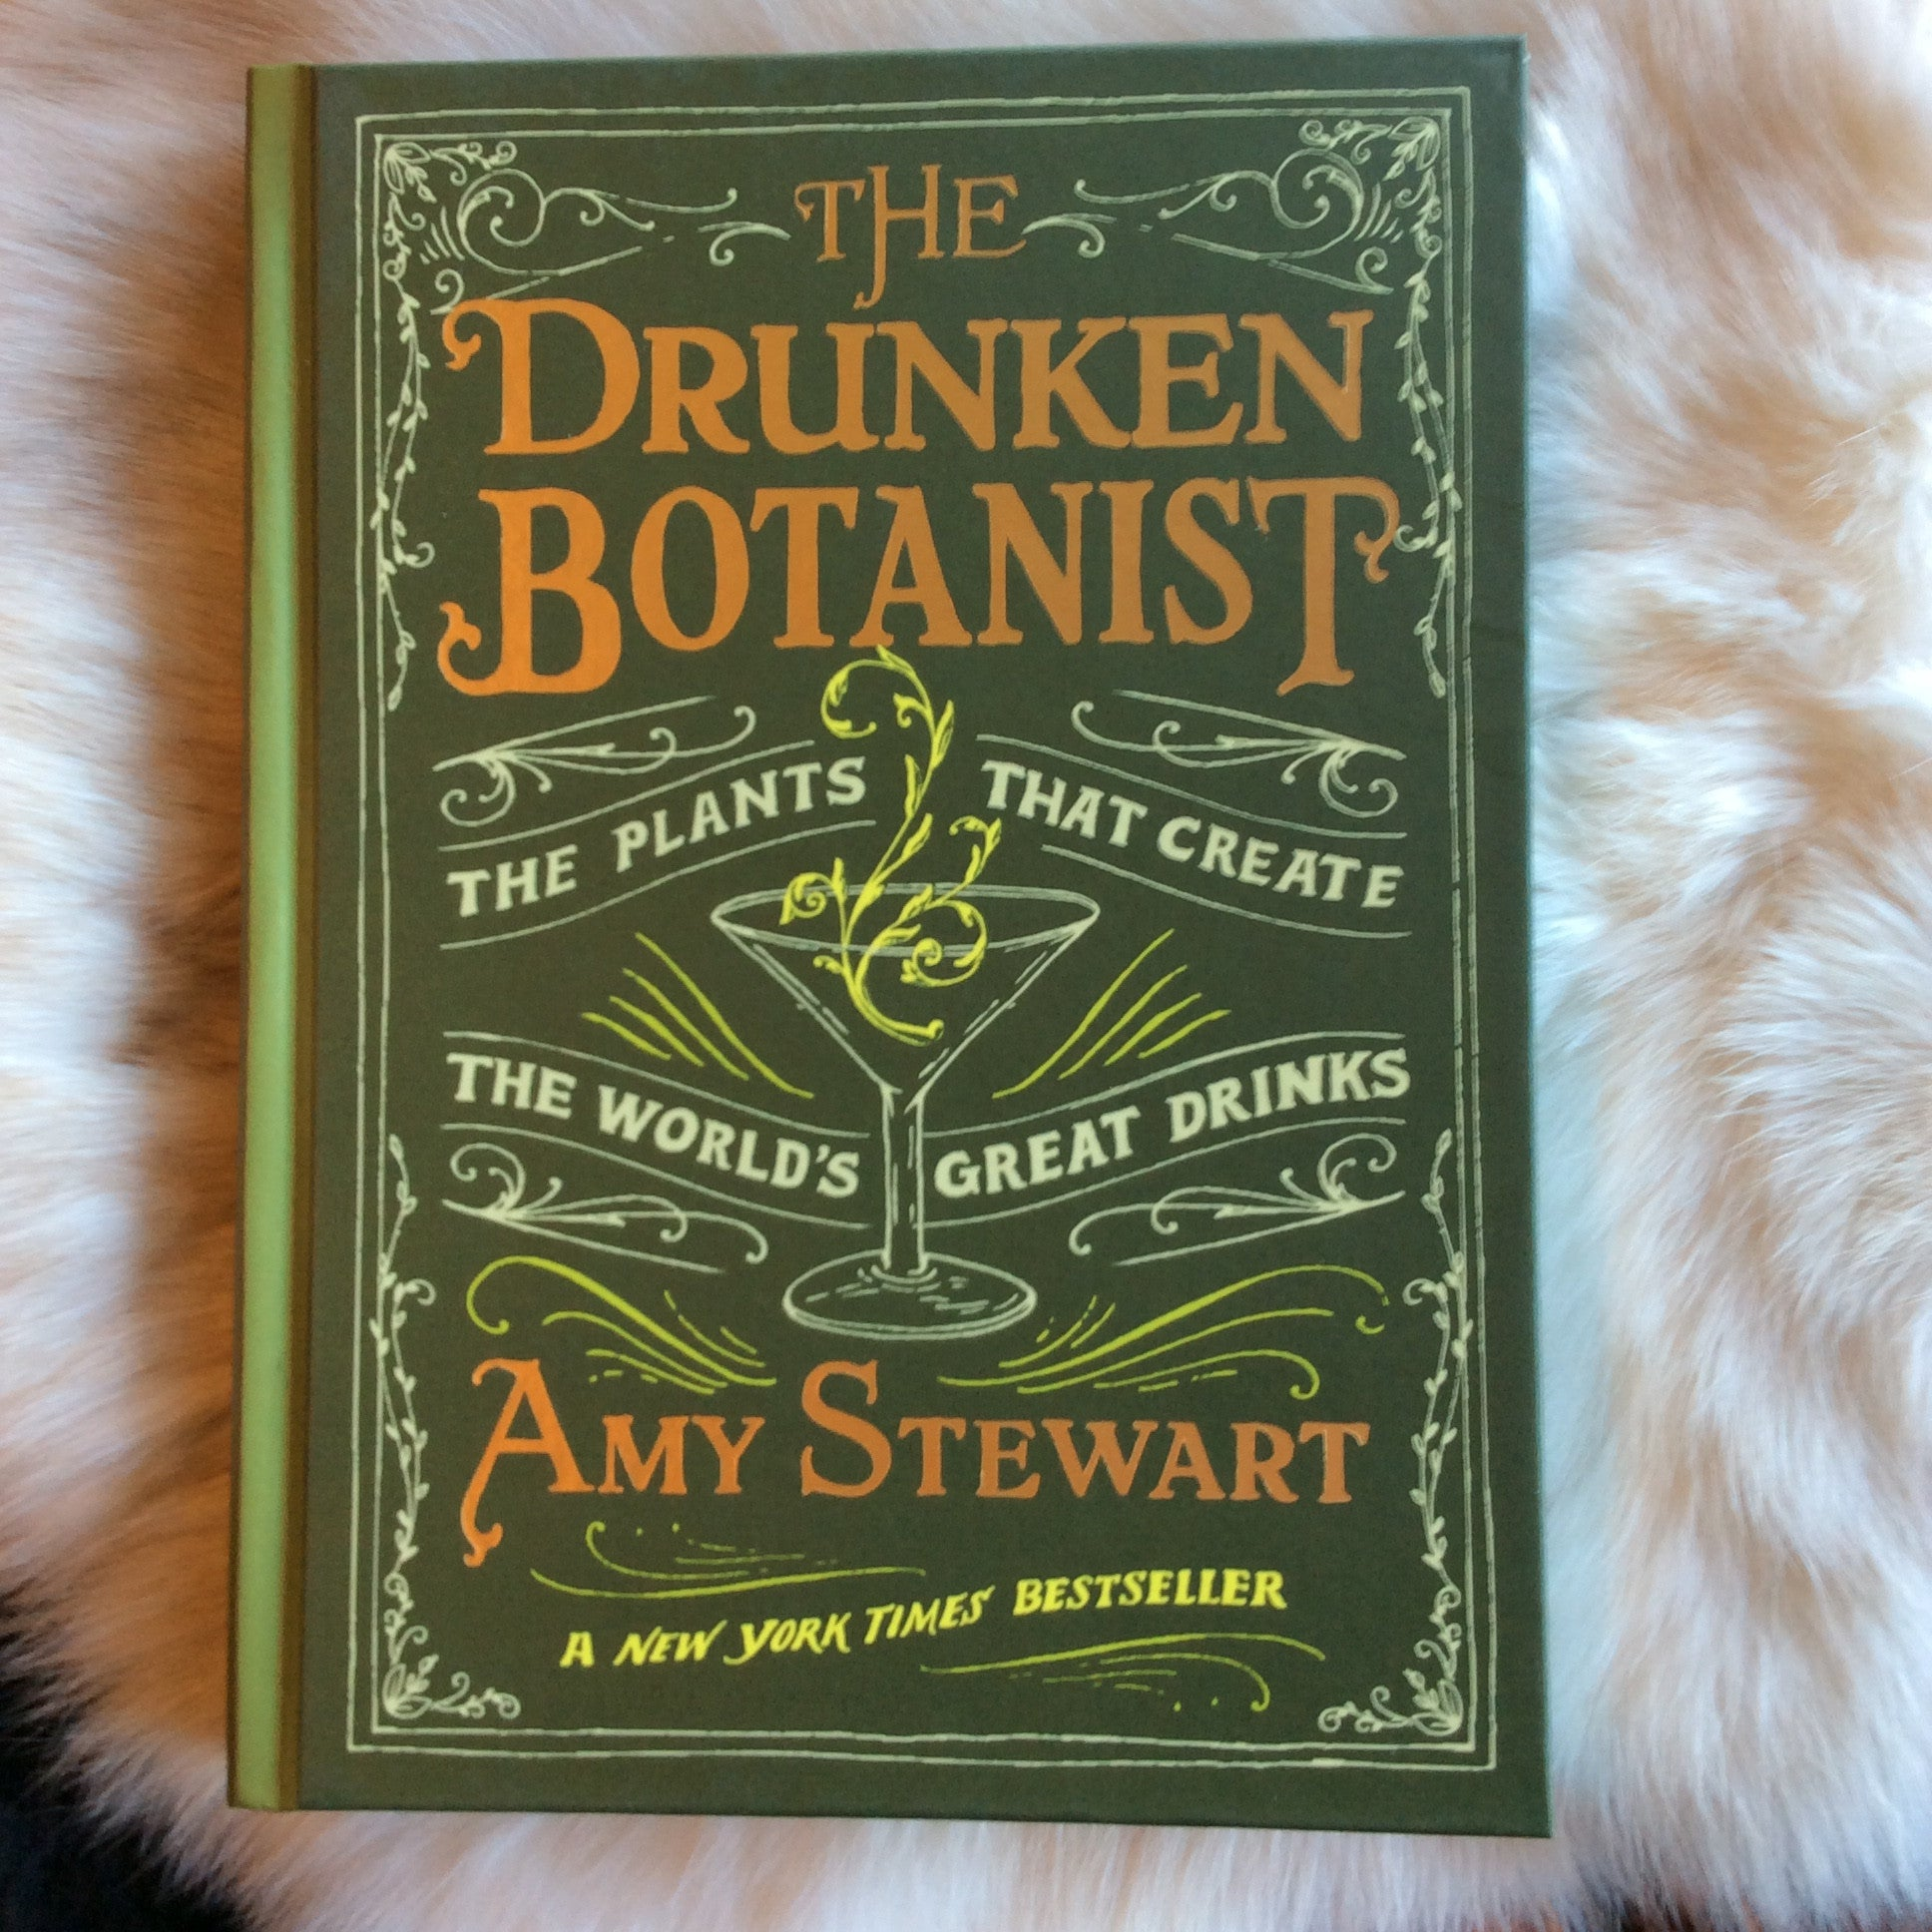 The Drunken Botanist by: Amy Stewart